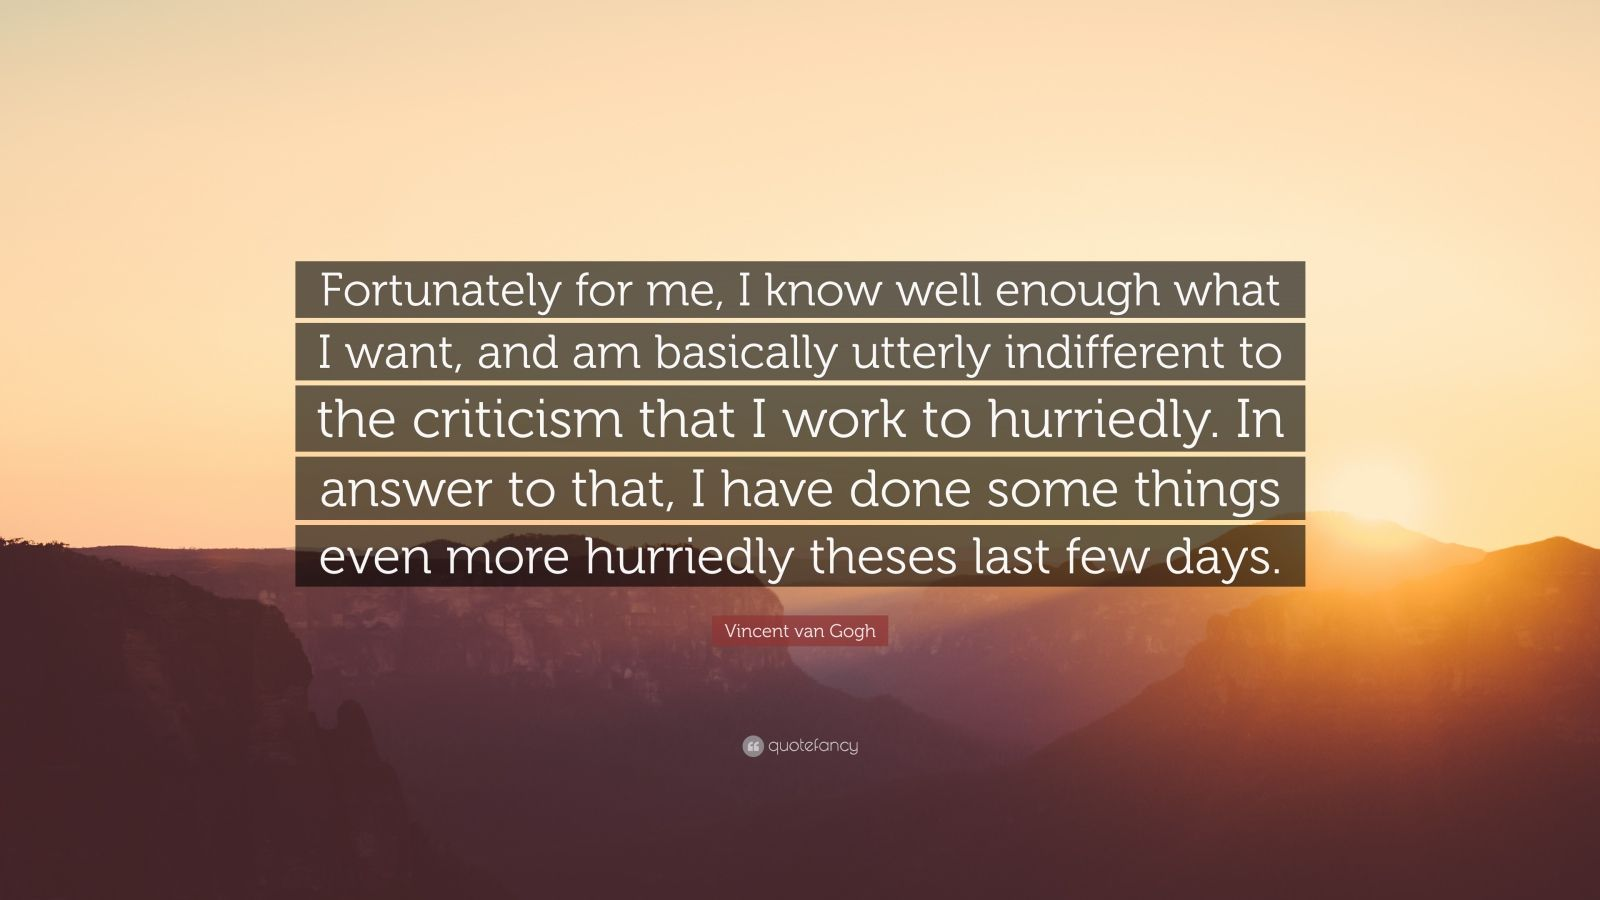 """Vincent van Gogh Quote: """"Fortunately for me, I know well enough what I want, and am basically utterly indifferent to the criticism that I work to hurriedly. In answer to that, I have done some things even more hurriedly theses last few days."""""""